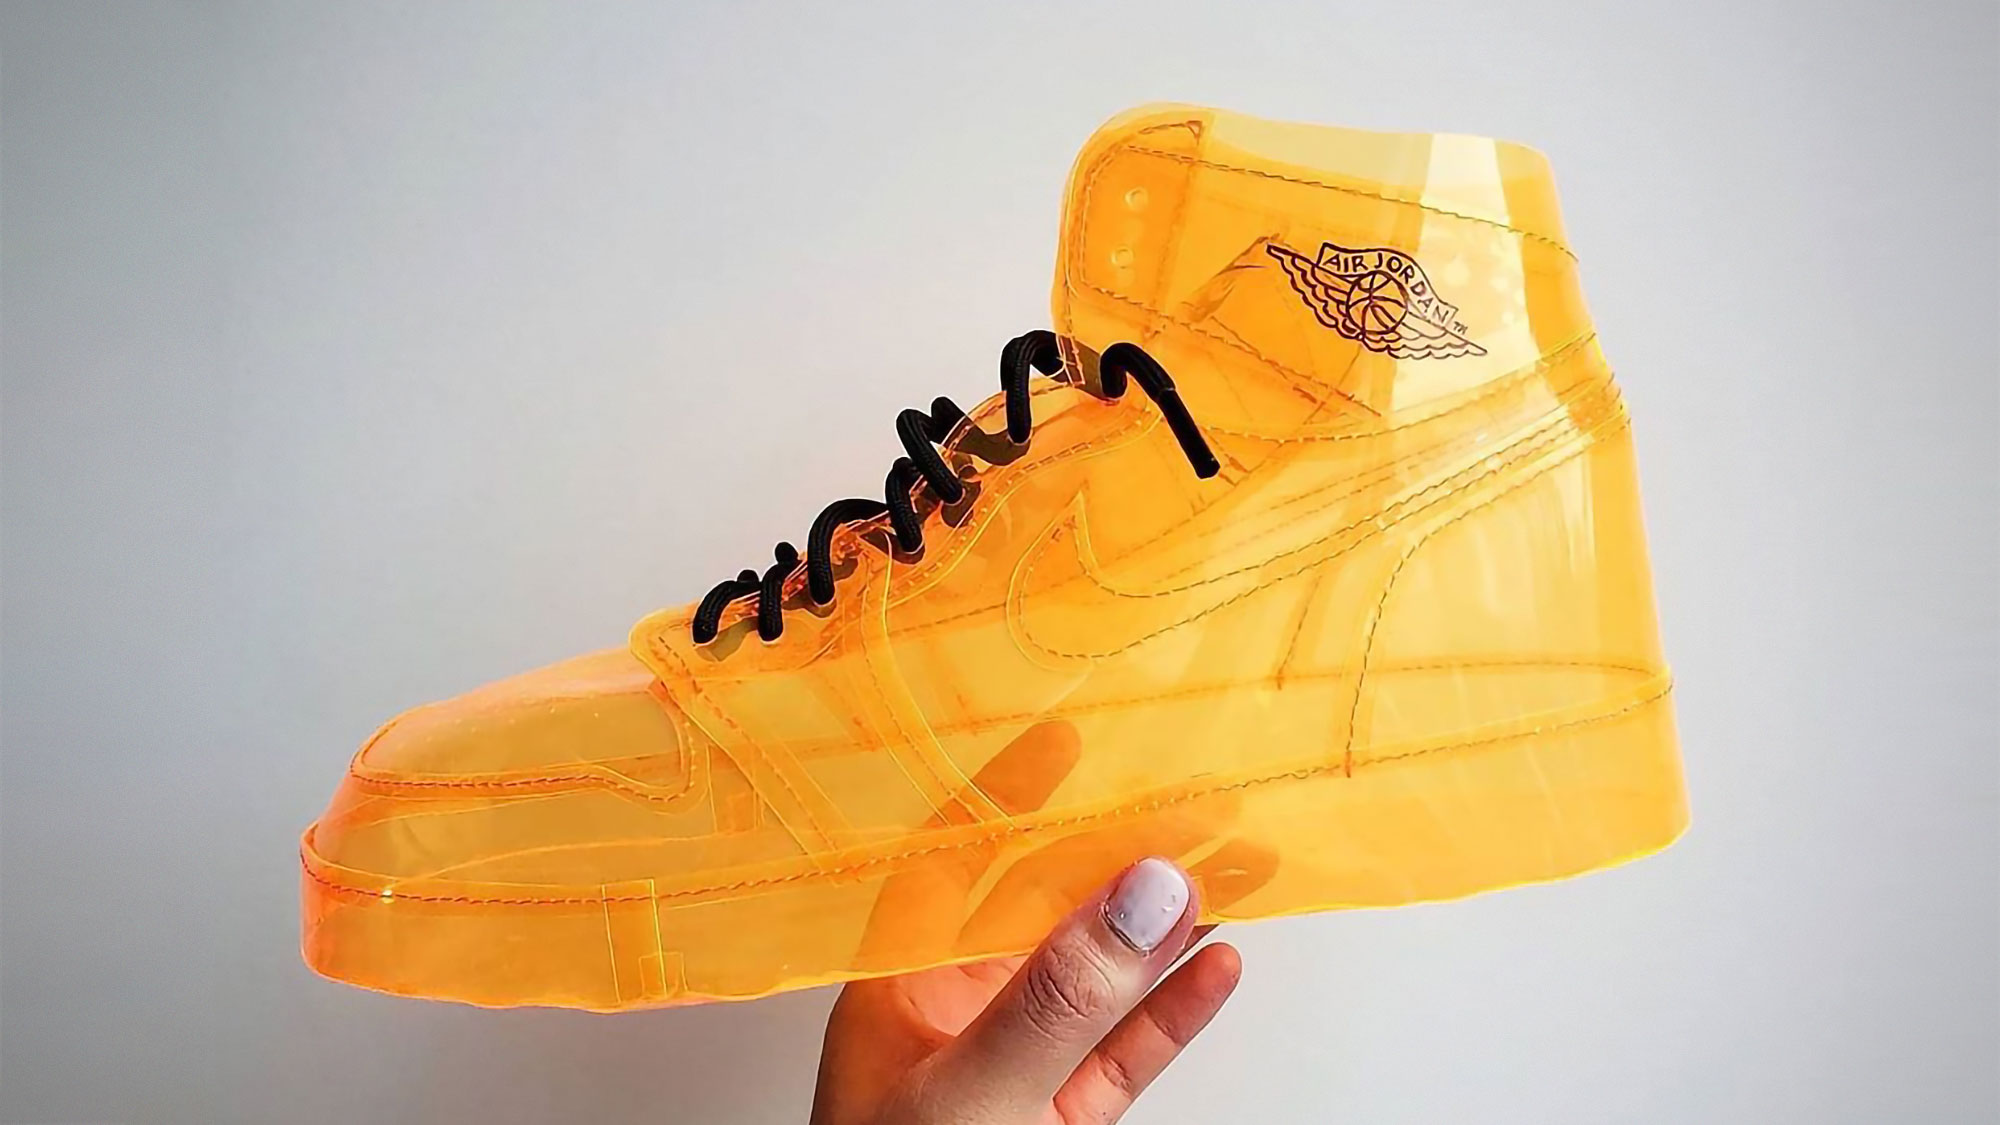 See Through Orange Jelly Jordan Sneaker May Not Be Practical But It Looks Dope Anyways Shouts